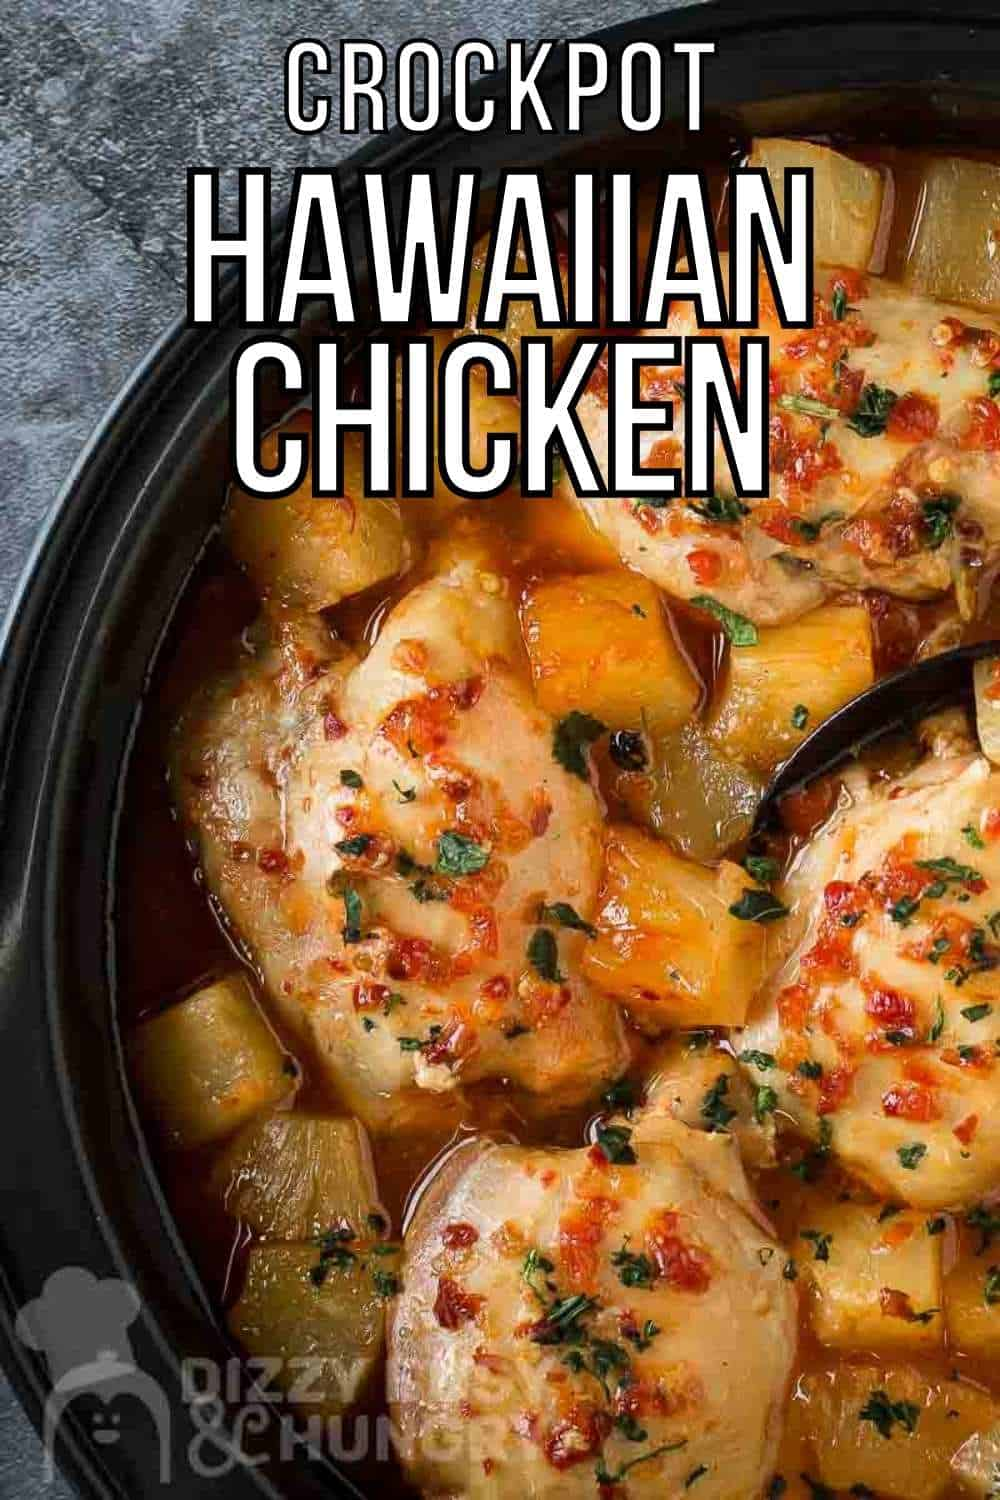 Overhead close up shot of Hawaiian chicken in the crockpot with a black spoon on a grey marble counter.